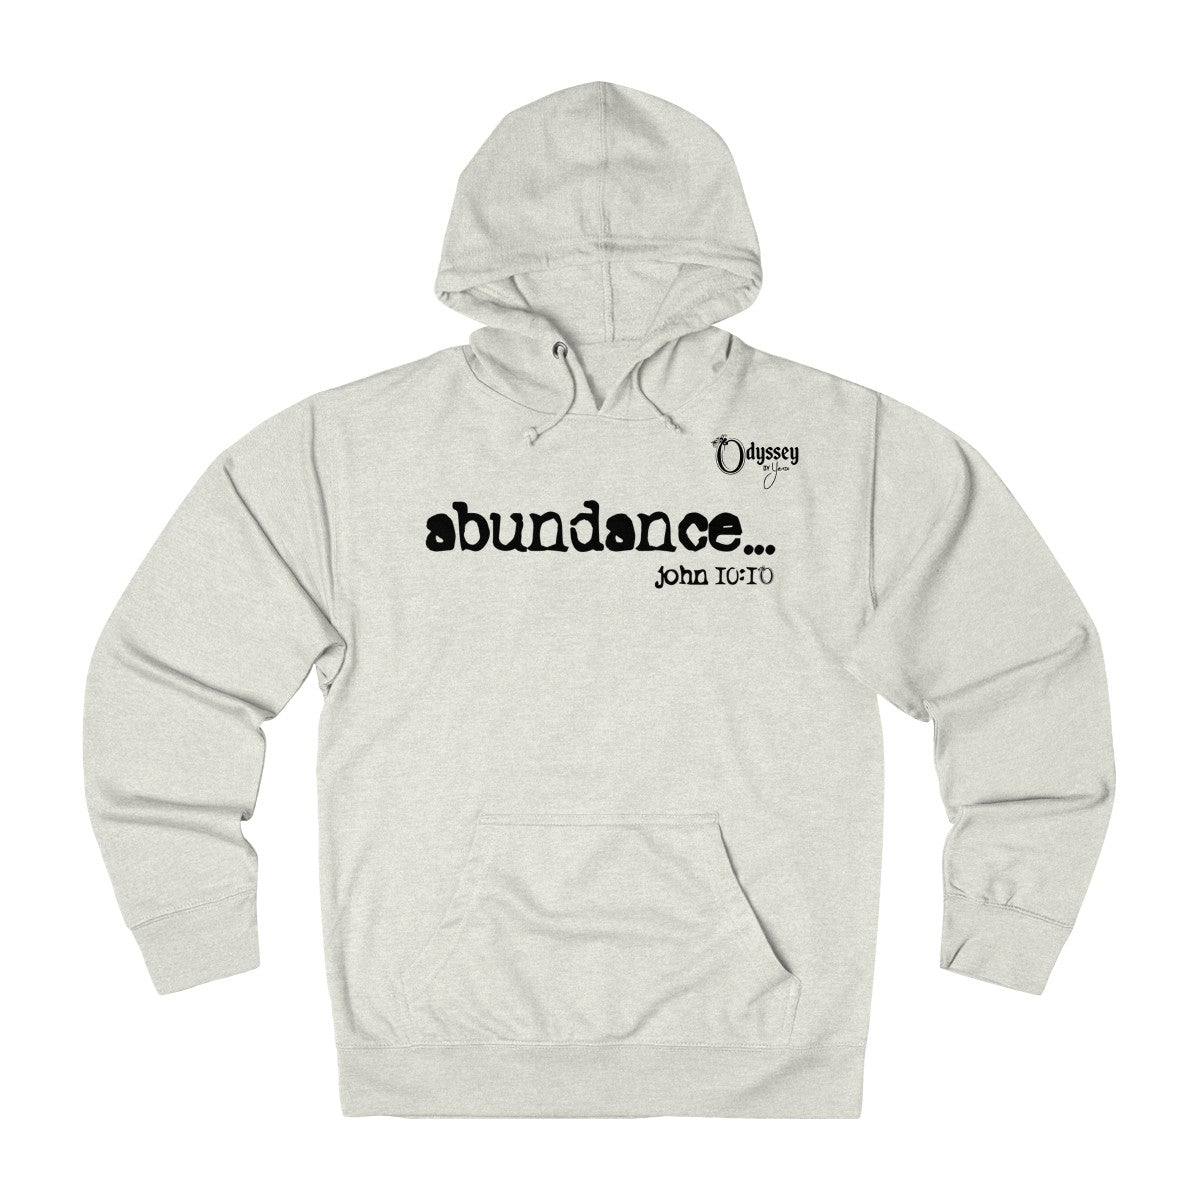 Odyssey Abundance Women's French Terry Hoodie